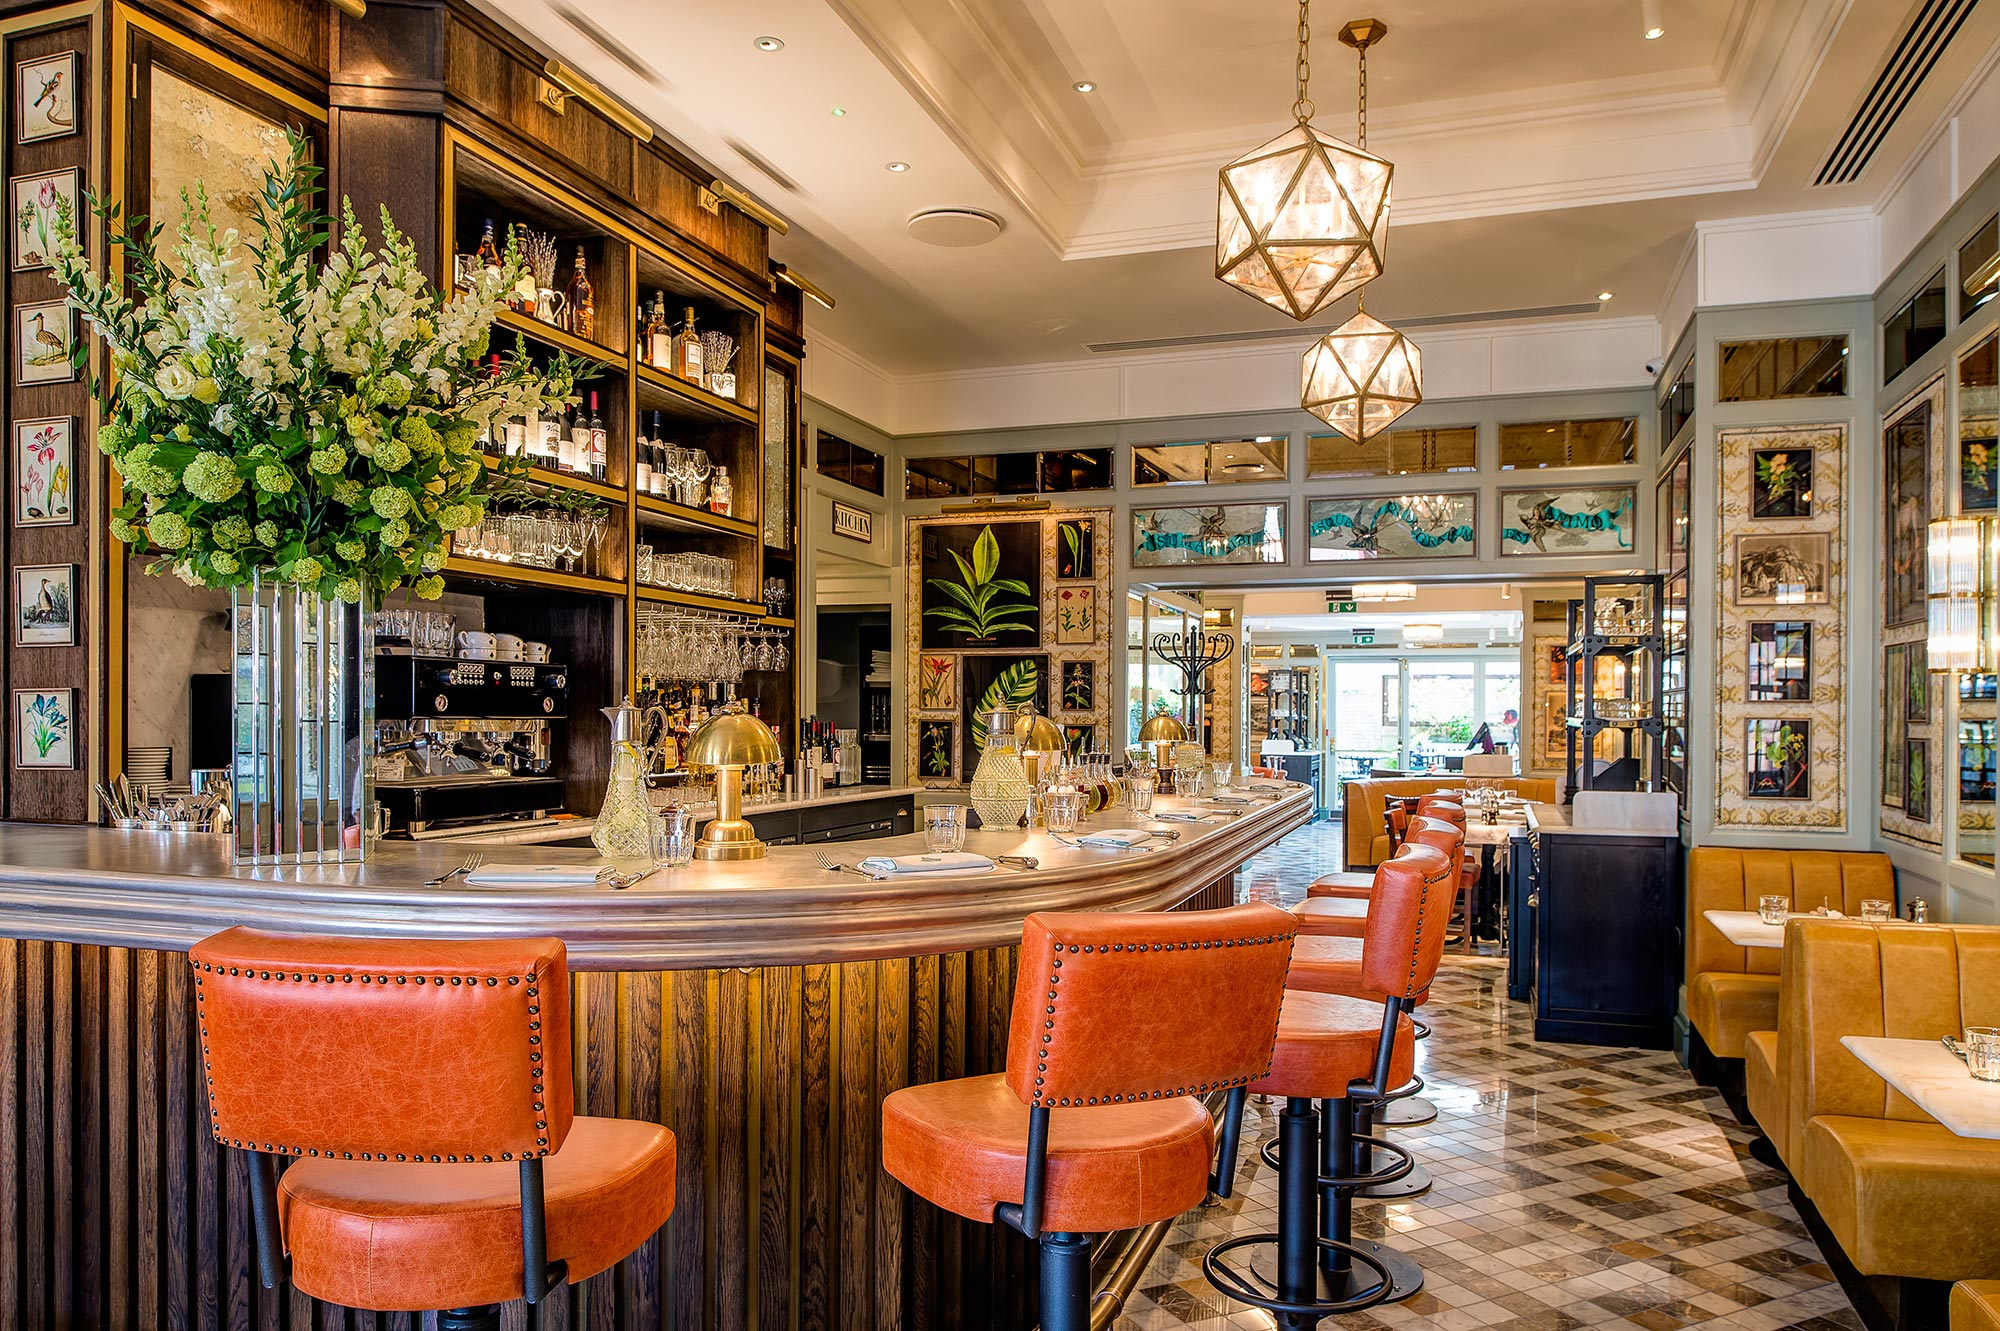 Restaurant Image Gallery The Ivy Cafe Wimbledon London